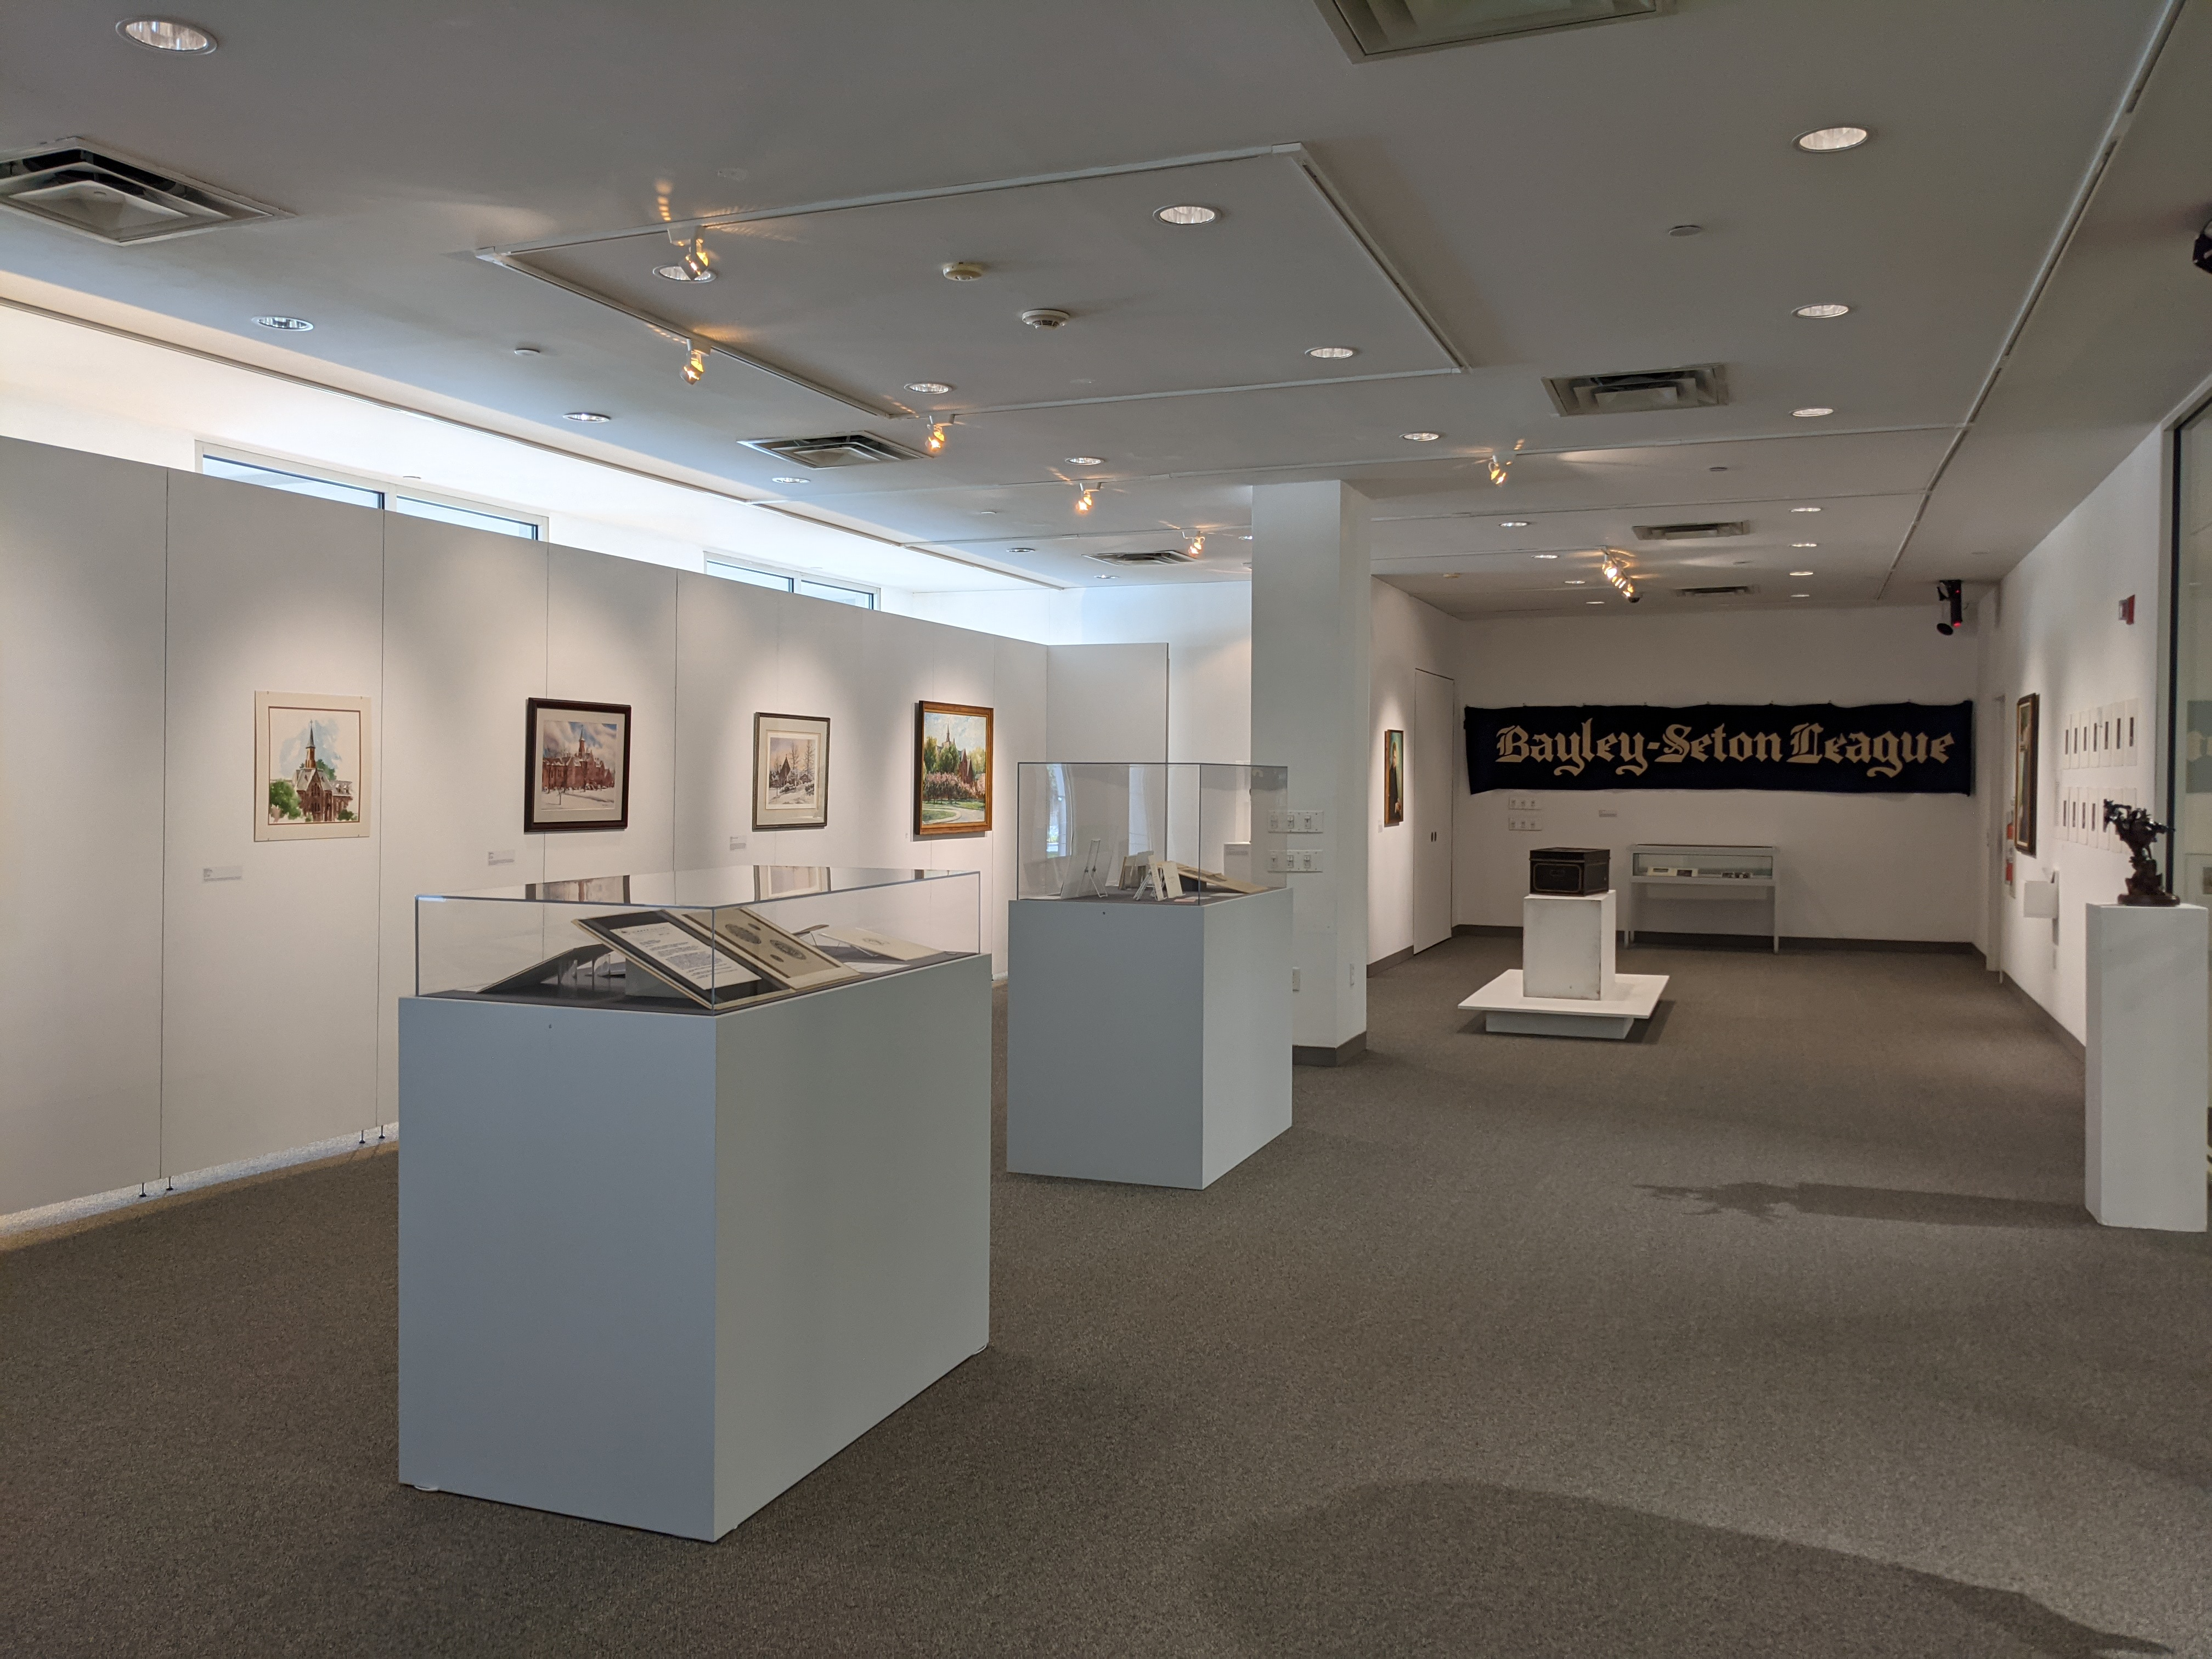 Installation image of the exhibition